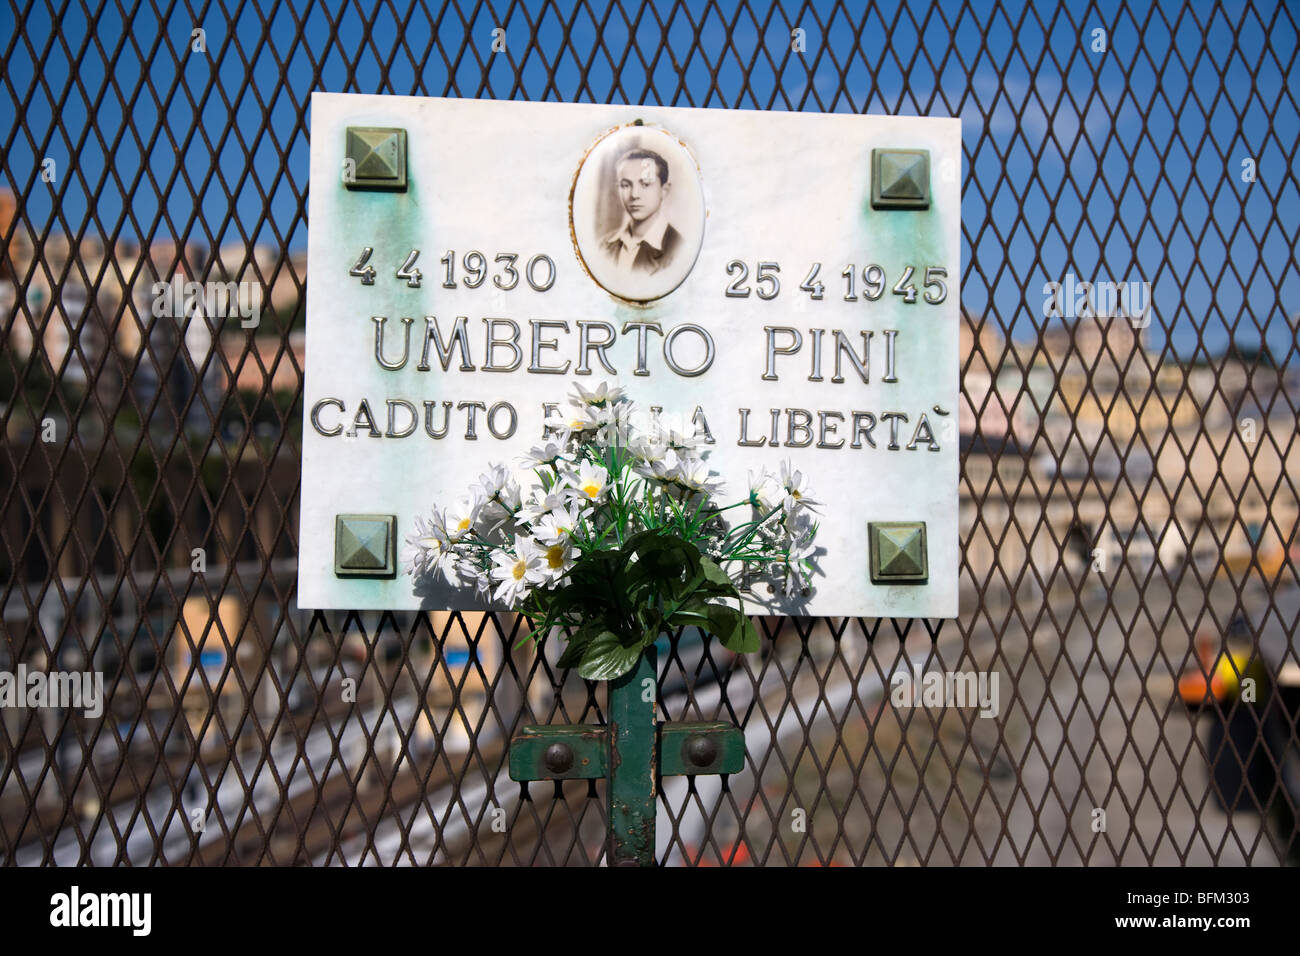 Memorial plaque to a partisan killed in world war 2, Genoa, Italy - Stock Image